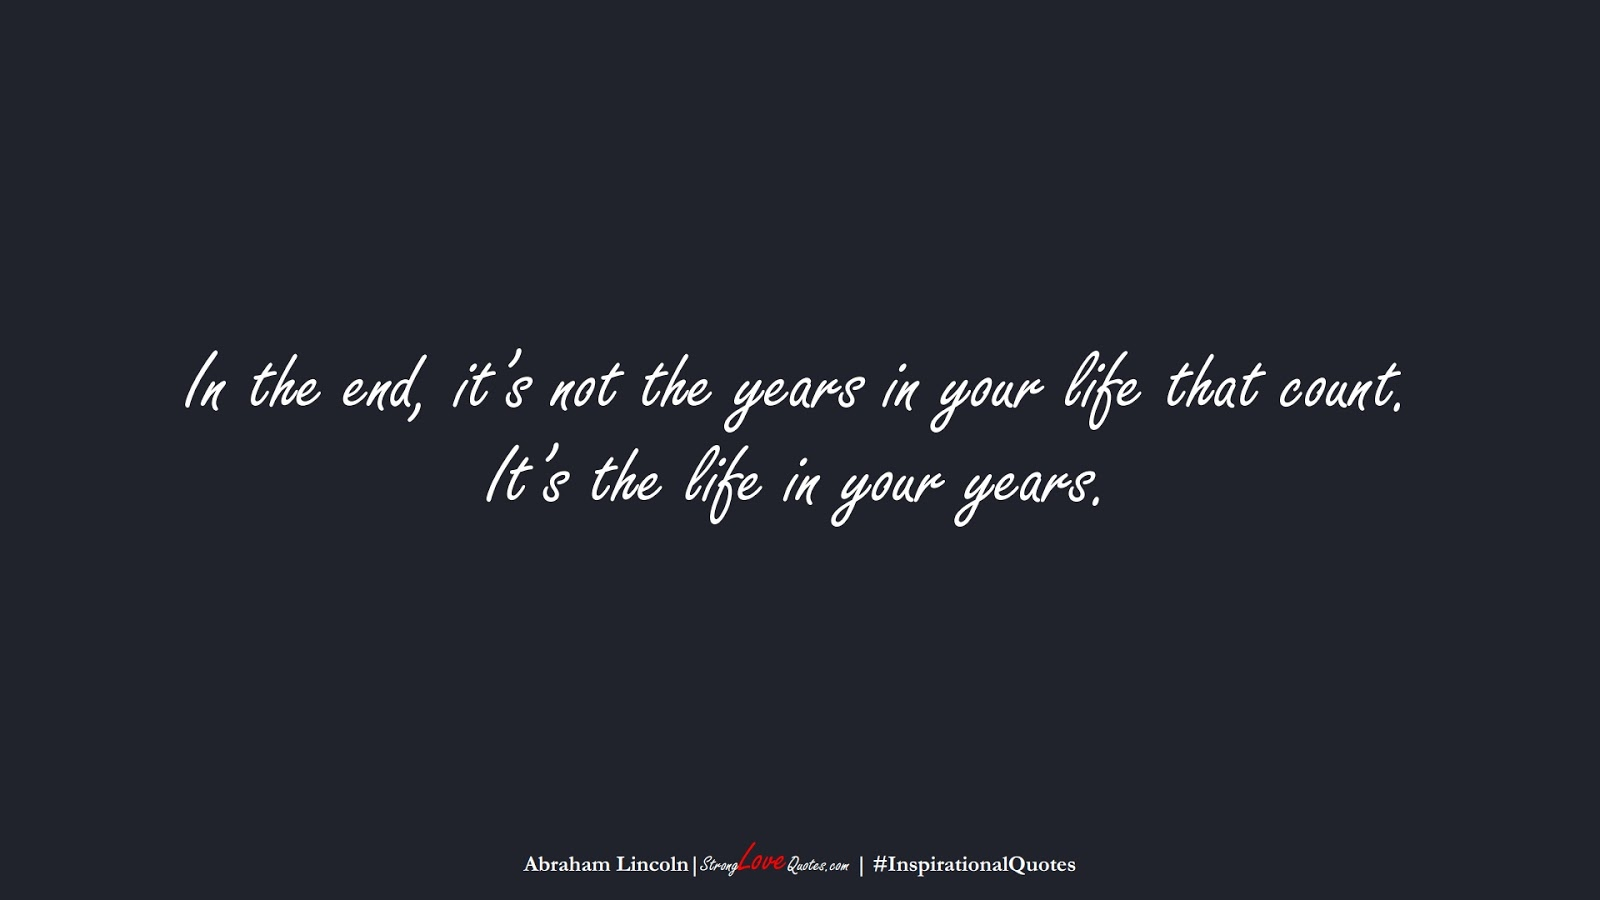 In the end, it's not the years in your life that count. It's the life in your years. (Abraham Lincoln);  #InspirationalQuotes